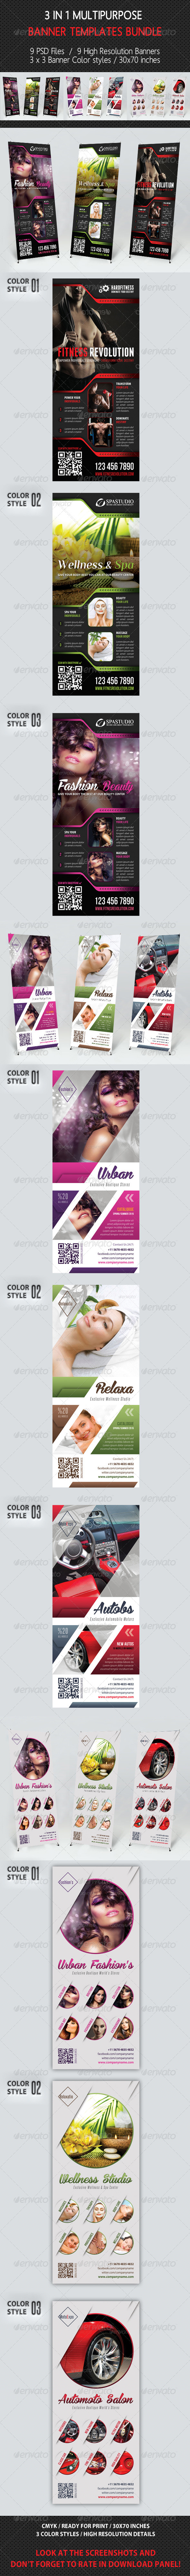 GraphicRiver 3 in 1 Multipurpose Banner Bundle 01 7630216